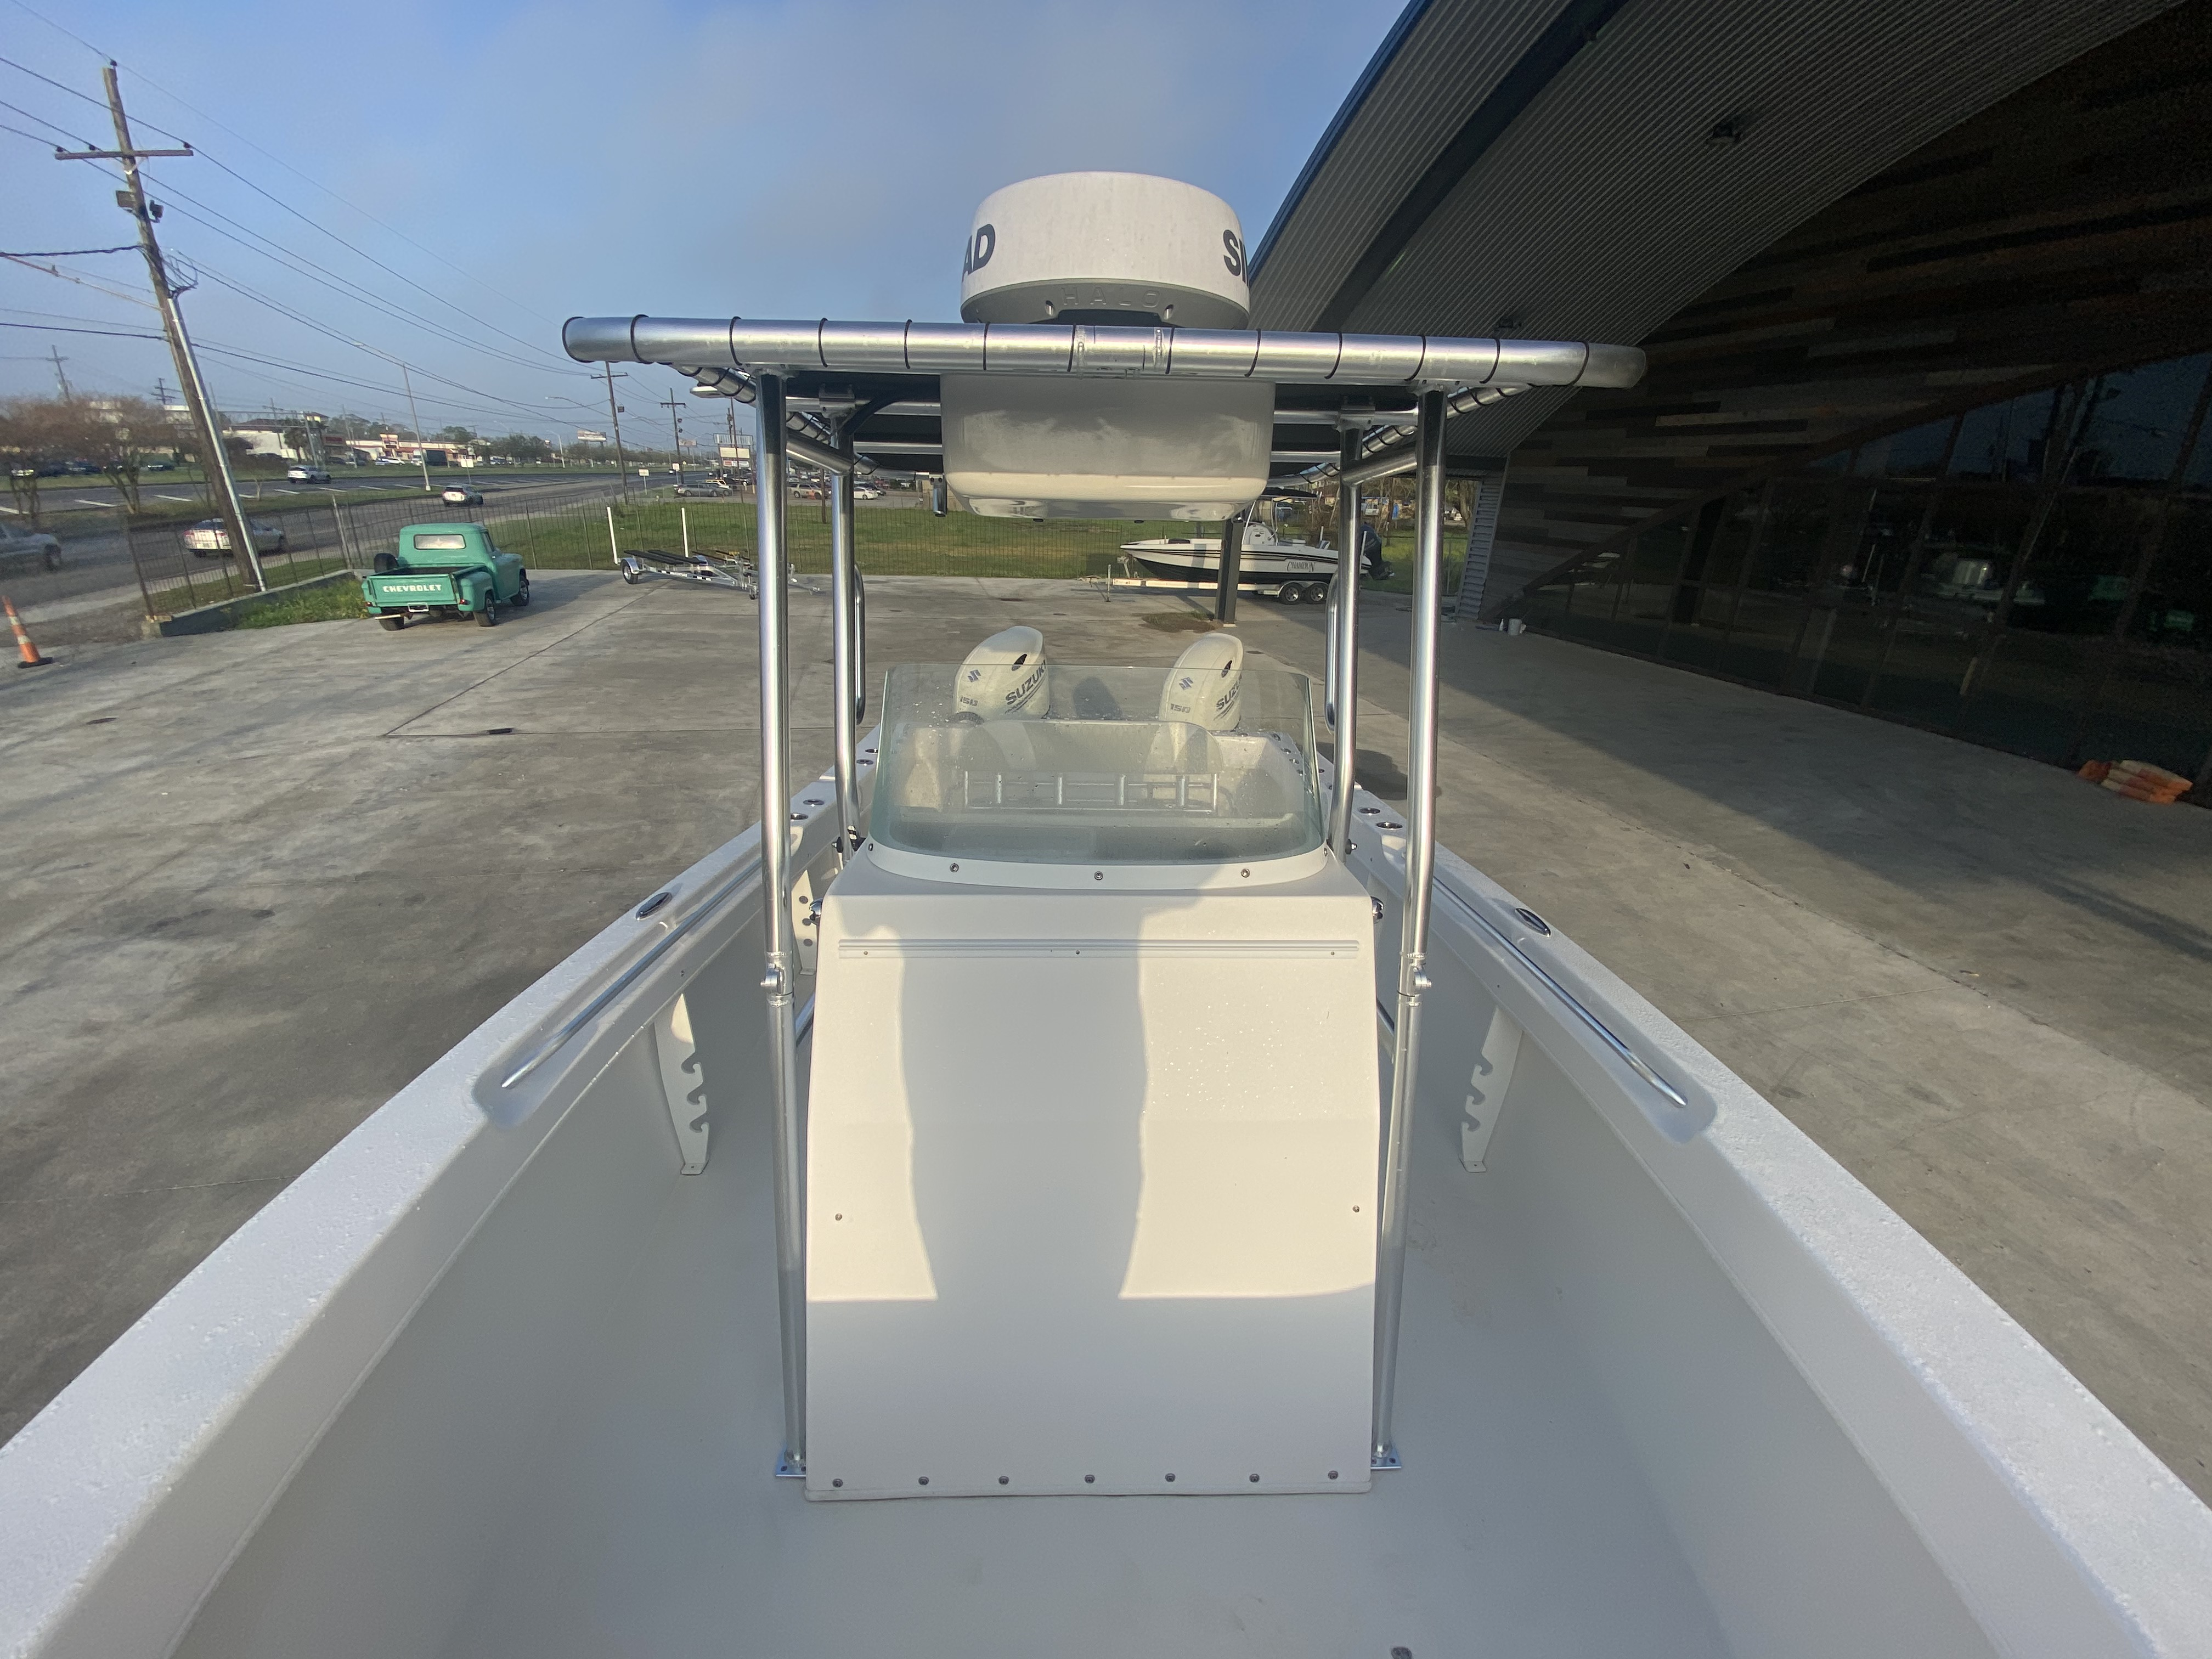 2020 Twin Vee boat for sale, model of the boat is 26 Pro & Image # 17 of 24